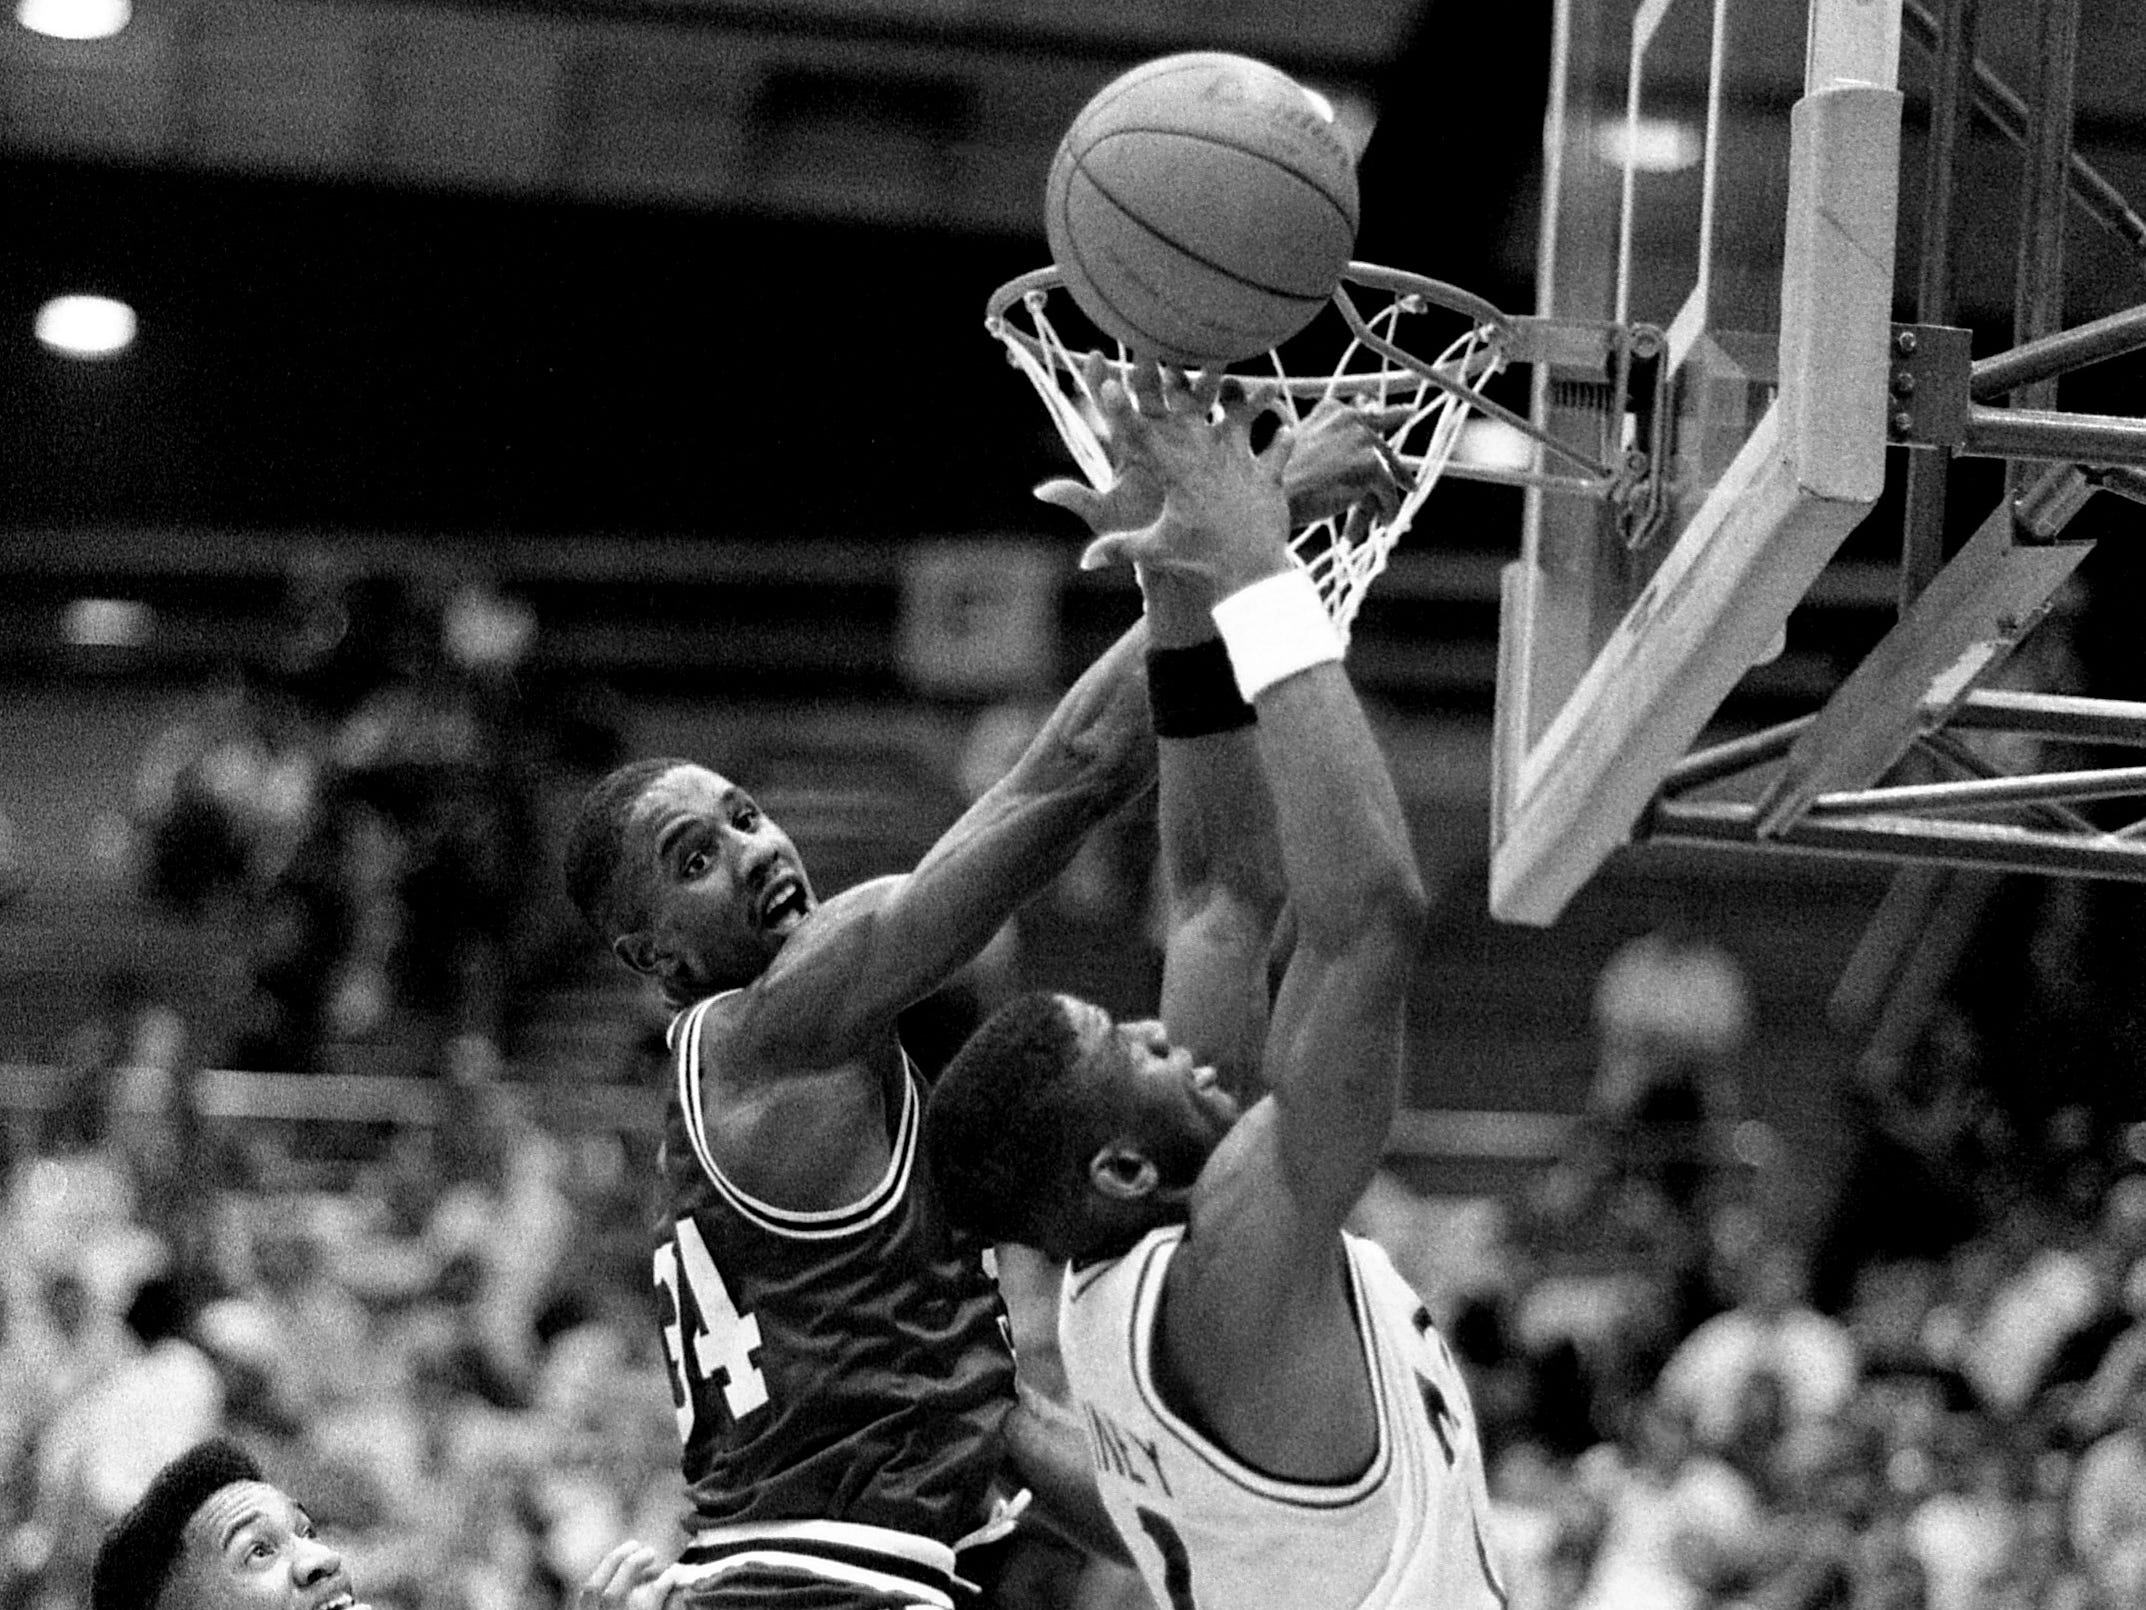 Austin Peay State's LaMonte Ware (34) and Middle Tennessee State's Chris Rainey, right, fight for a rebound in their OVC battle at Murphy Center in Murfreesboro on Feb. 13, 1989. MTSU had to work overtime to pull off a 111-105 victory to stay in first place with an 8-1 record.